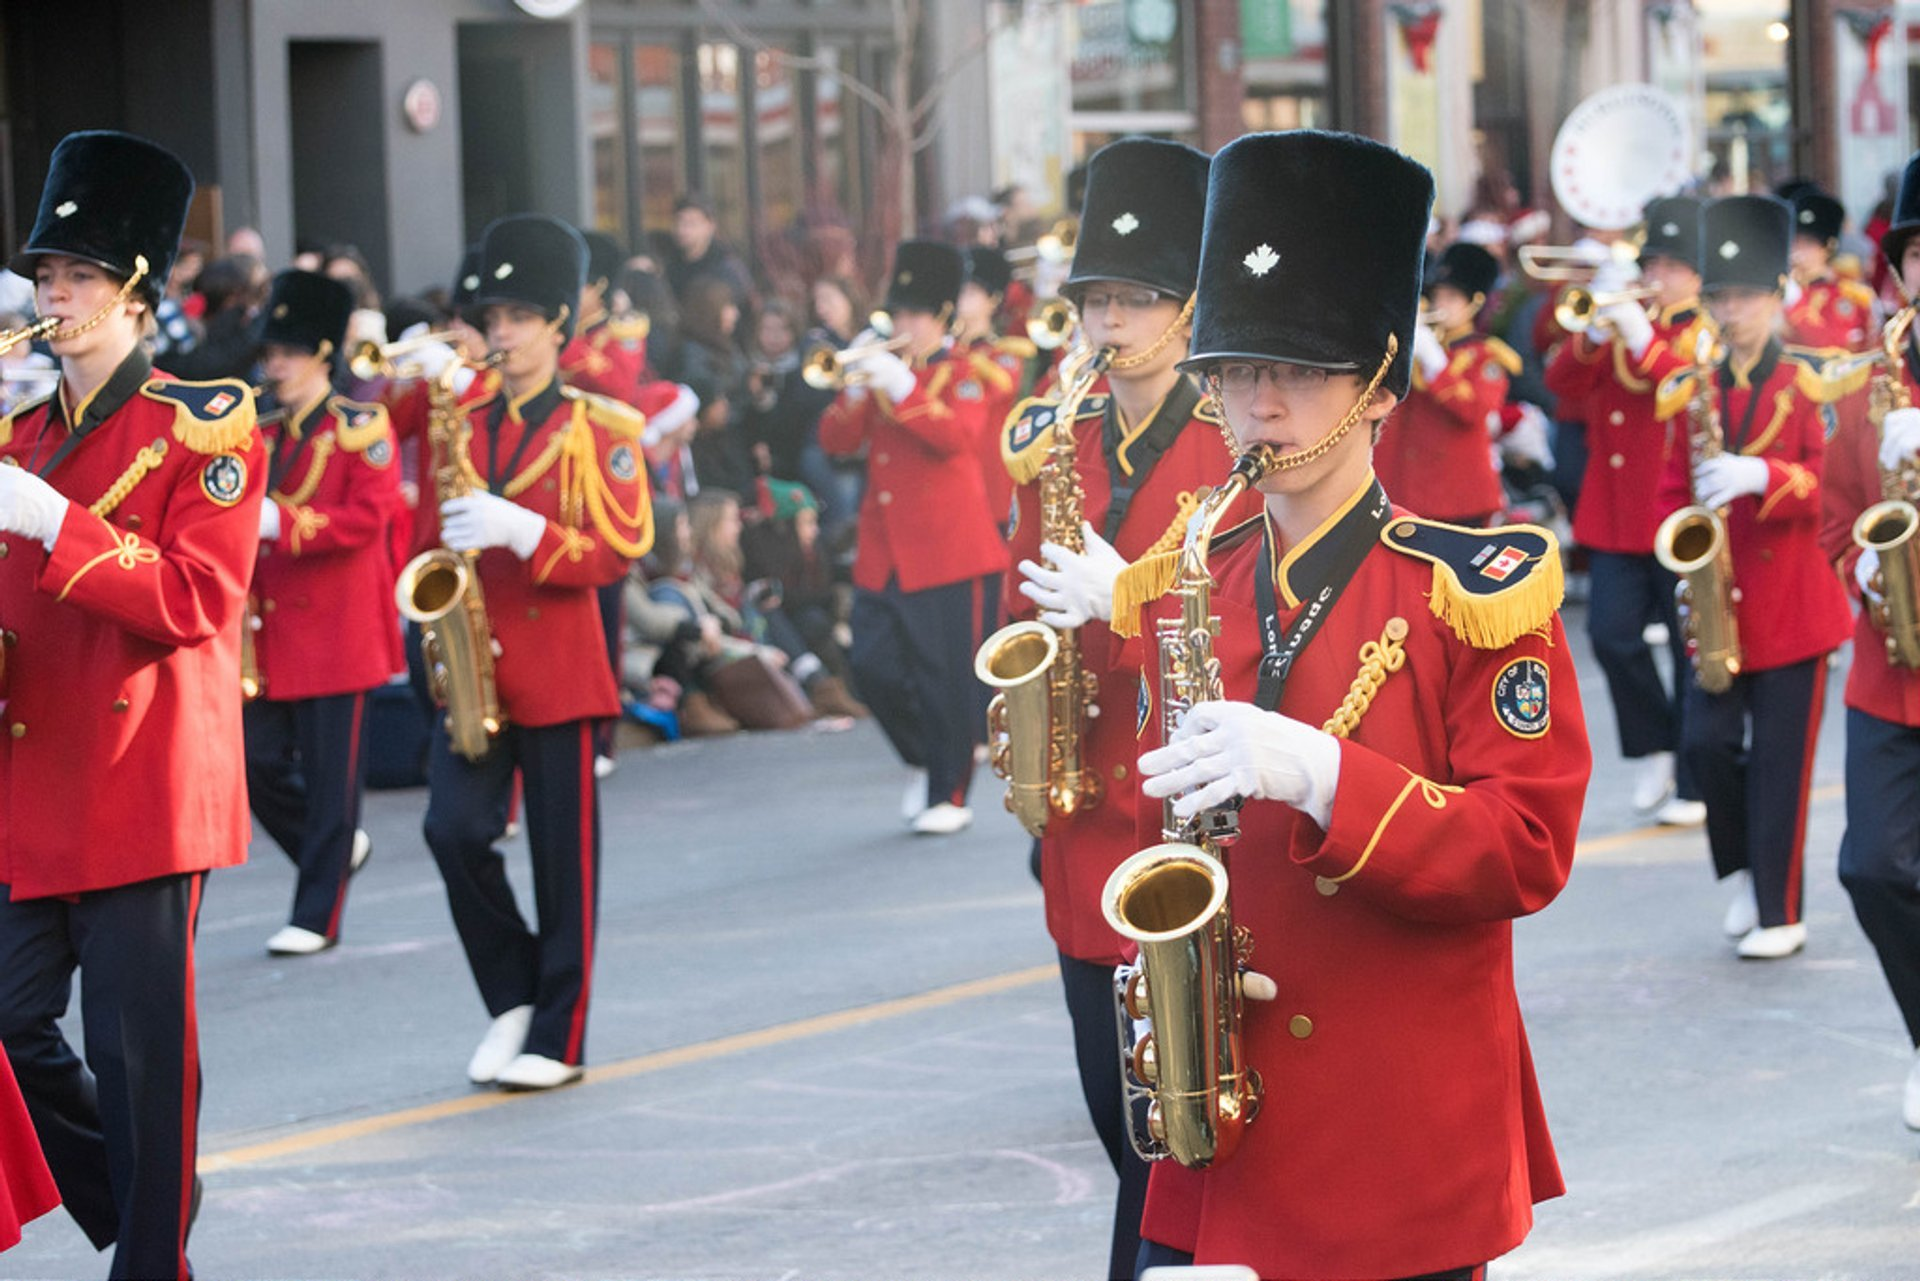 Best time to see Santa Claus Parade in Toronto 2019